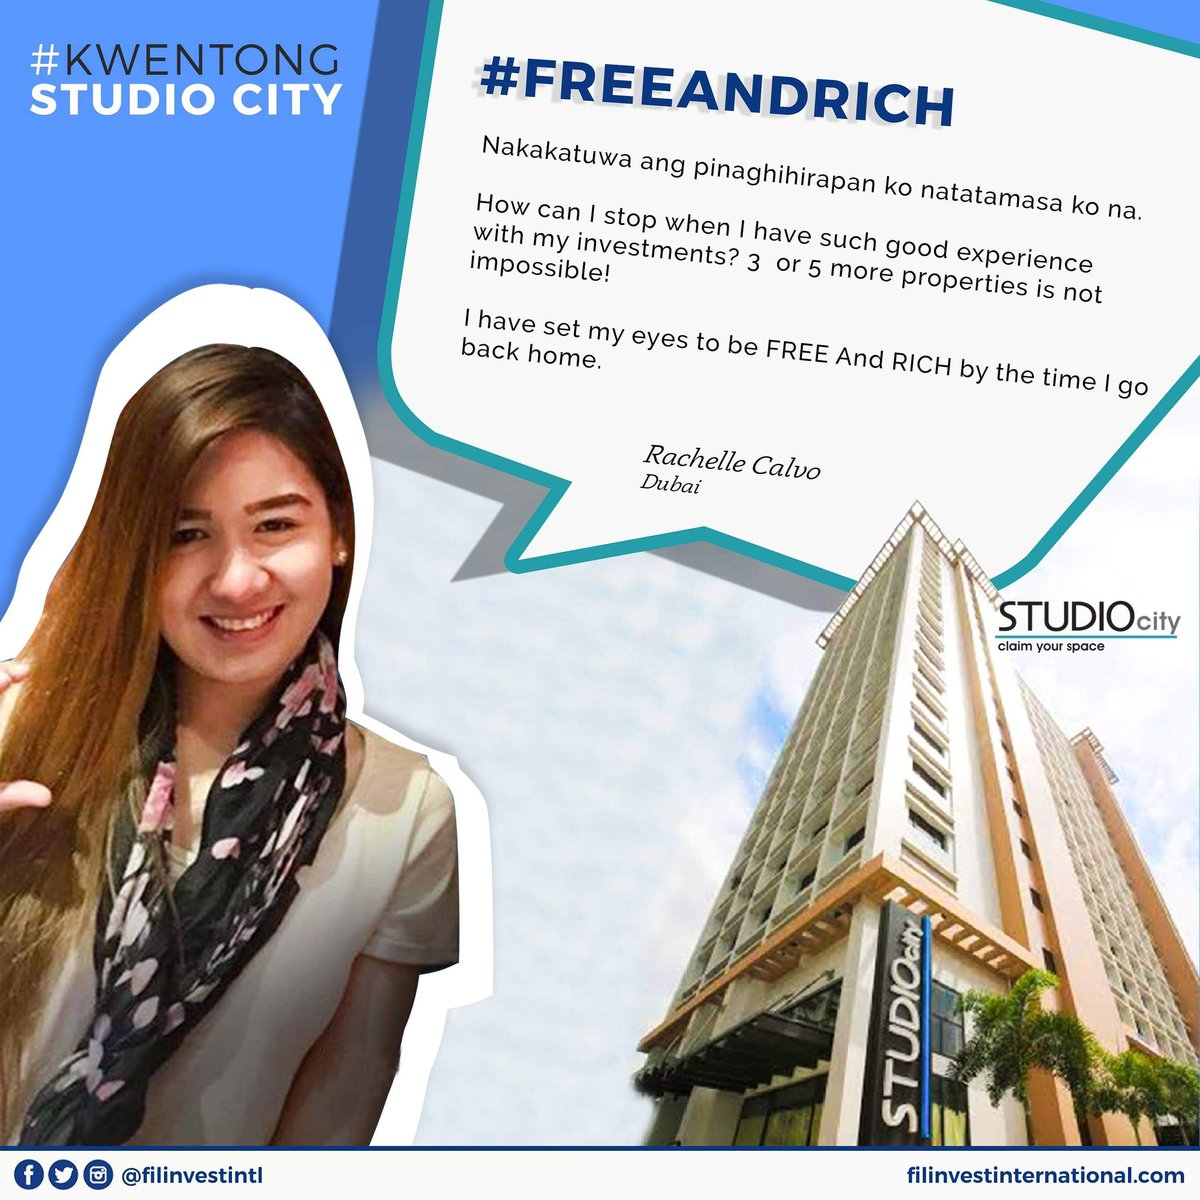 """""""I have set my eyes to be FREE and RICH by the time I go back home.""""   -Rachelle Calvo 